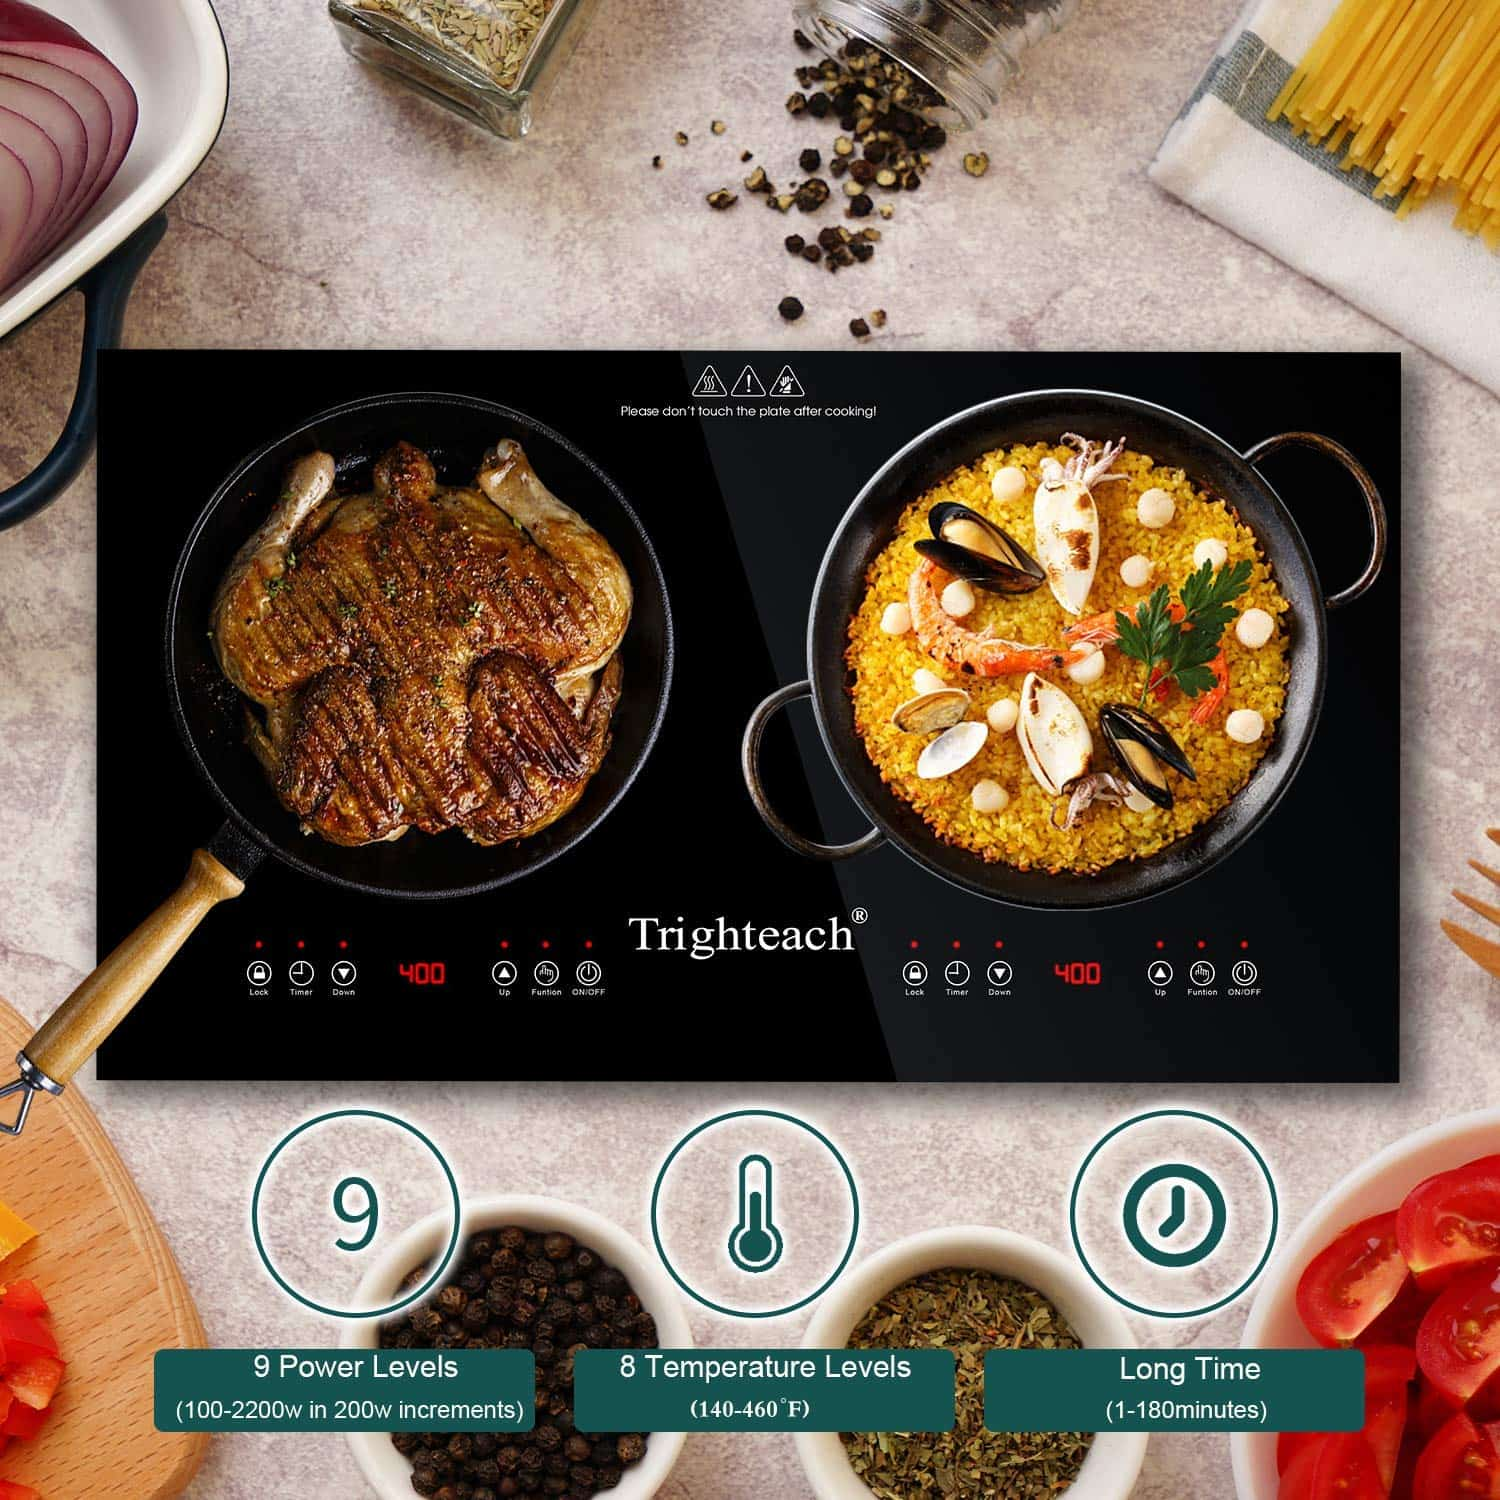 Best double burner induction stove for bachelors: Trighteach